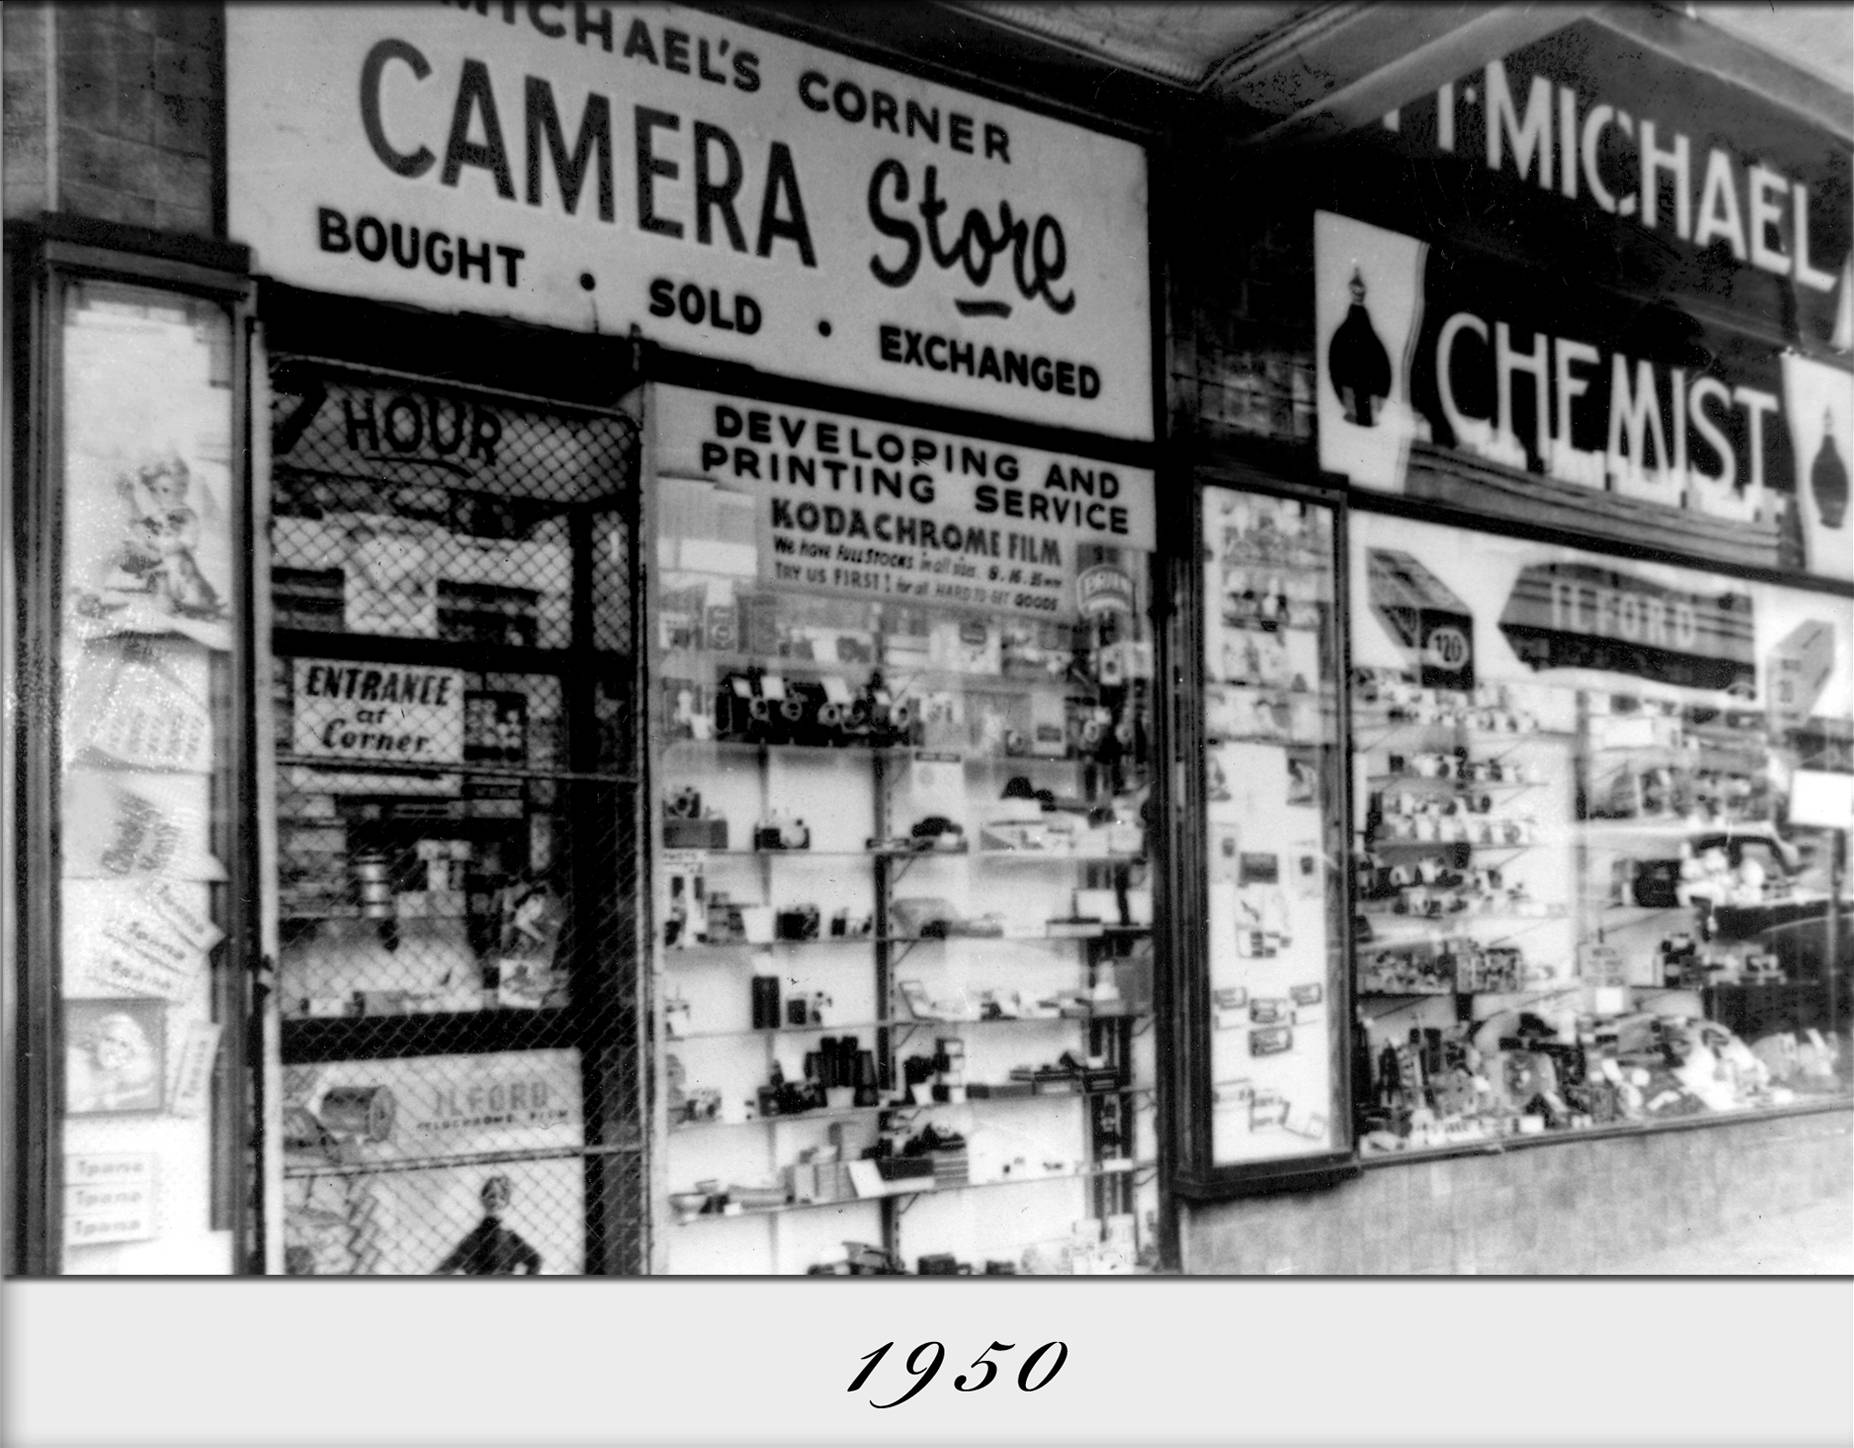 Michels Camera Store in 1950 (Pic: Michael Camera Video and Digital)